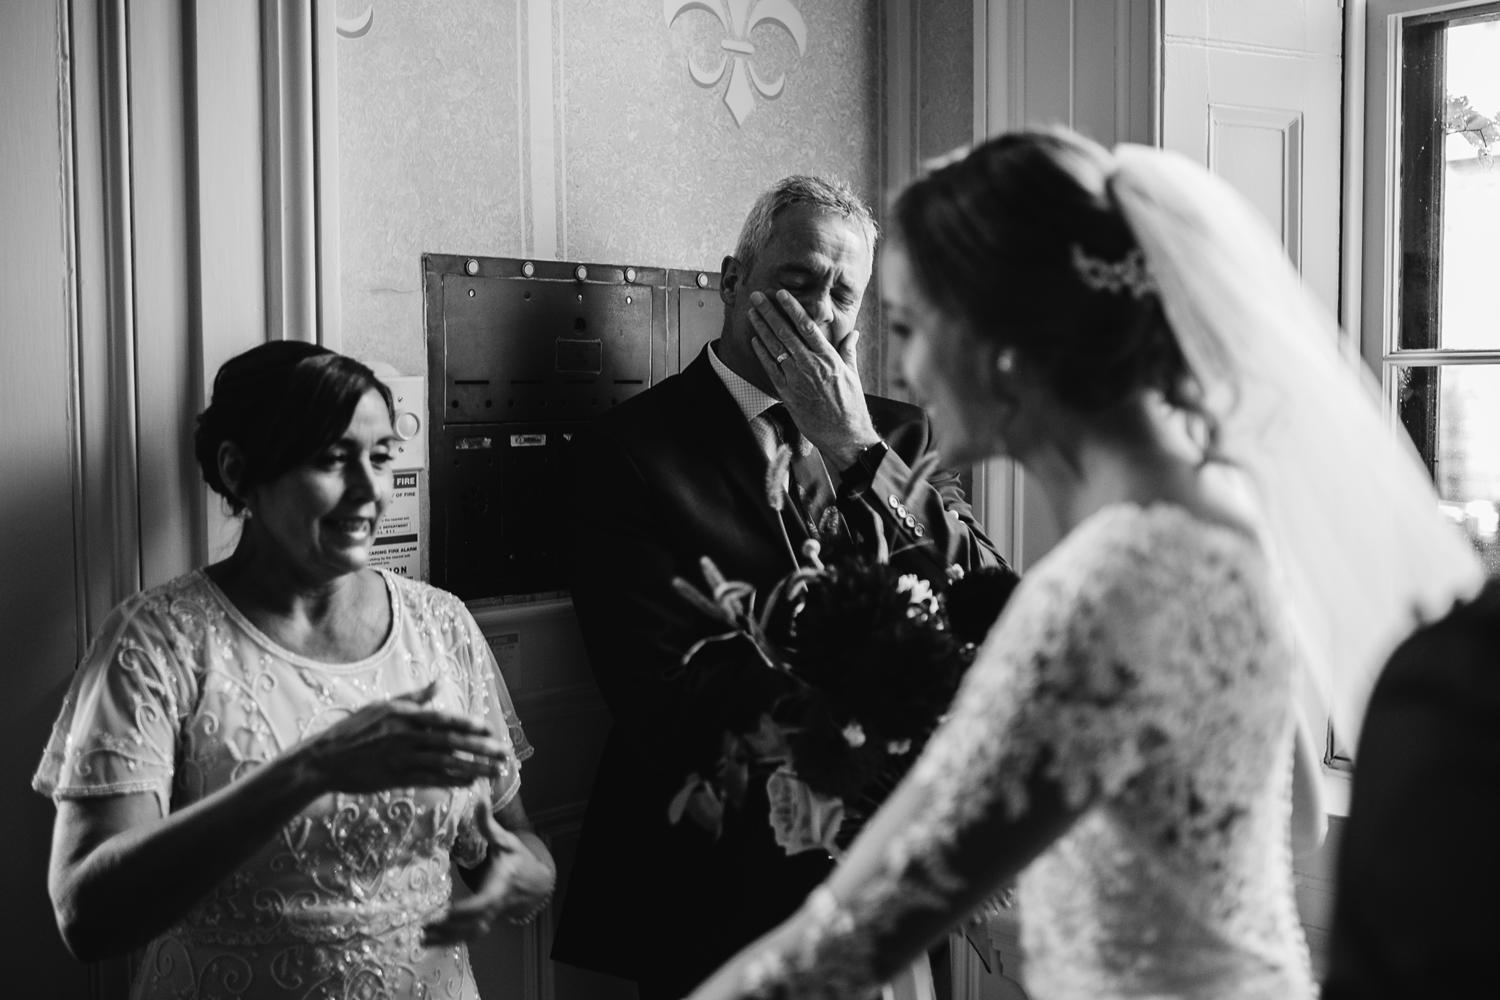 Ali___Steph_Wedding_142.jpg